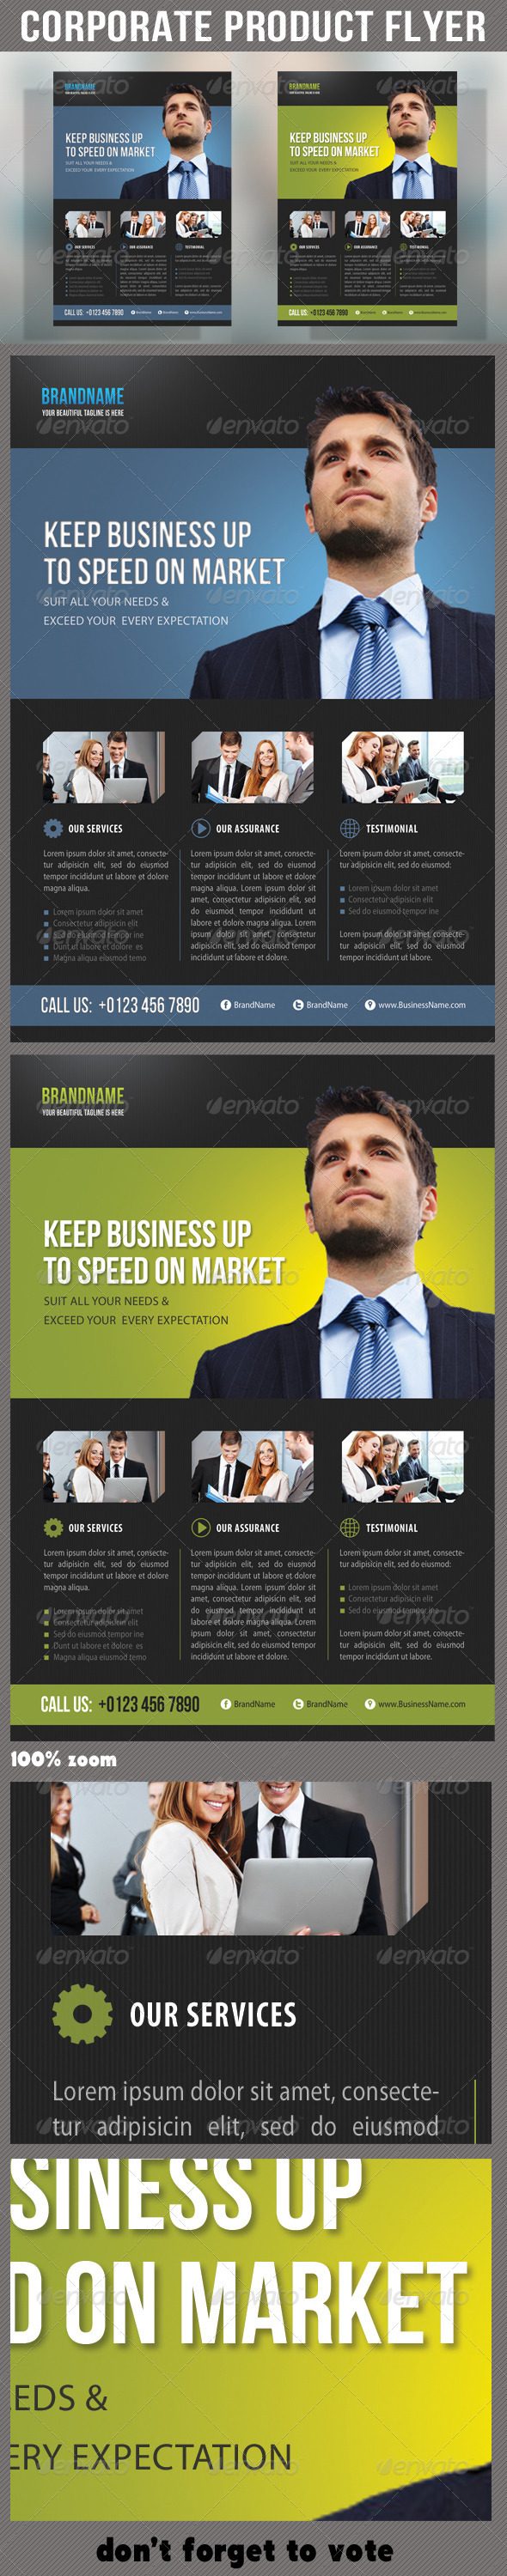 GraphicRiver Corporate Product Flyer 59 6986956